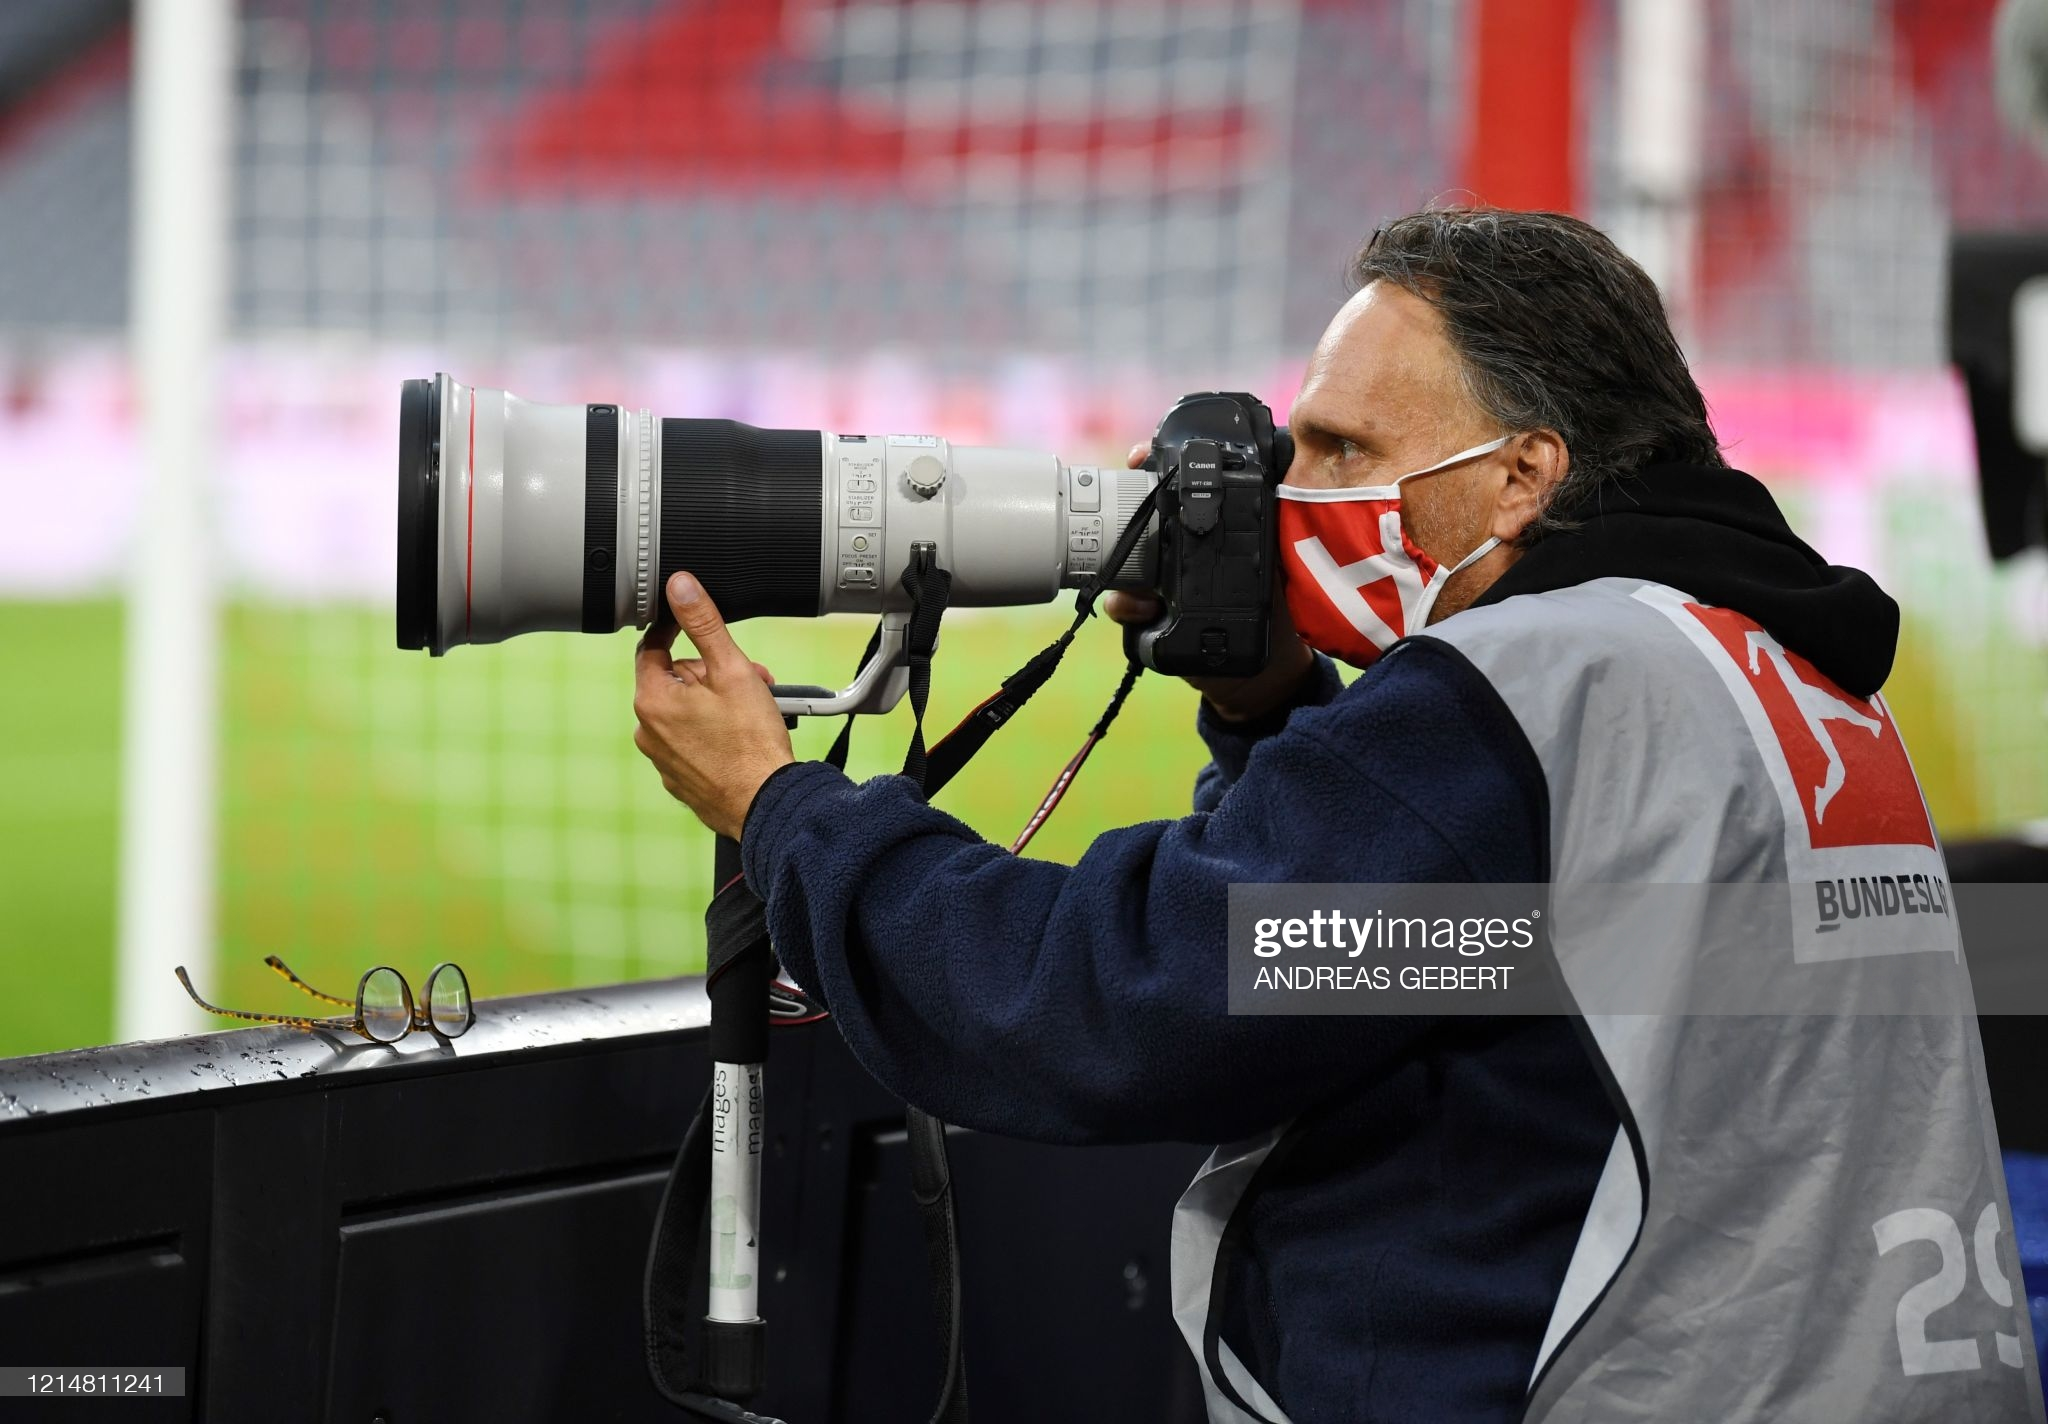 A photographer wears a protective face mask during the German first division Bundesliga football match between FC Bayern Munich and Eintracht Frankfurt on May 23, 2020 in Munich, southern Germany. (Photo by ANDREAS GEBERT / POOL / AFP) / DFL REGULATIONS PROHIBIT ANY USE OF PHOTOGRAPHS AS IMAGE SEQUENCES AND/OR QUASI-VIDEO (Photo by ANDREAS GEBERT/POOL/AFP via Getty Images)